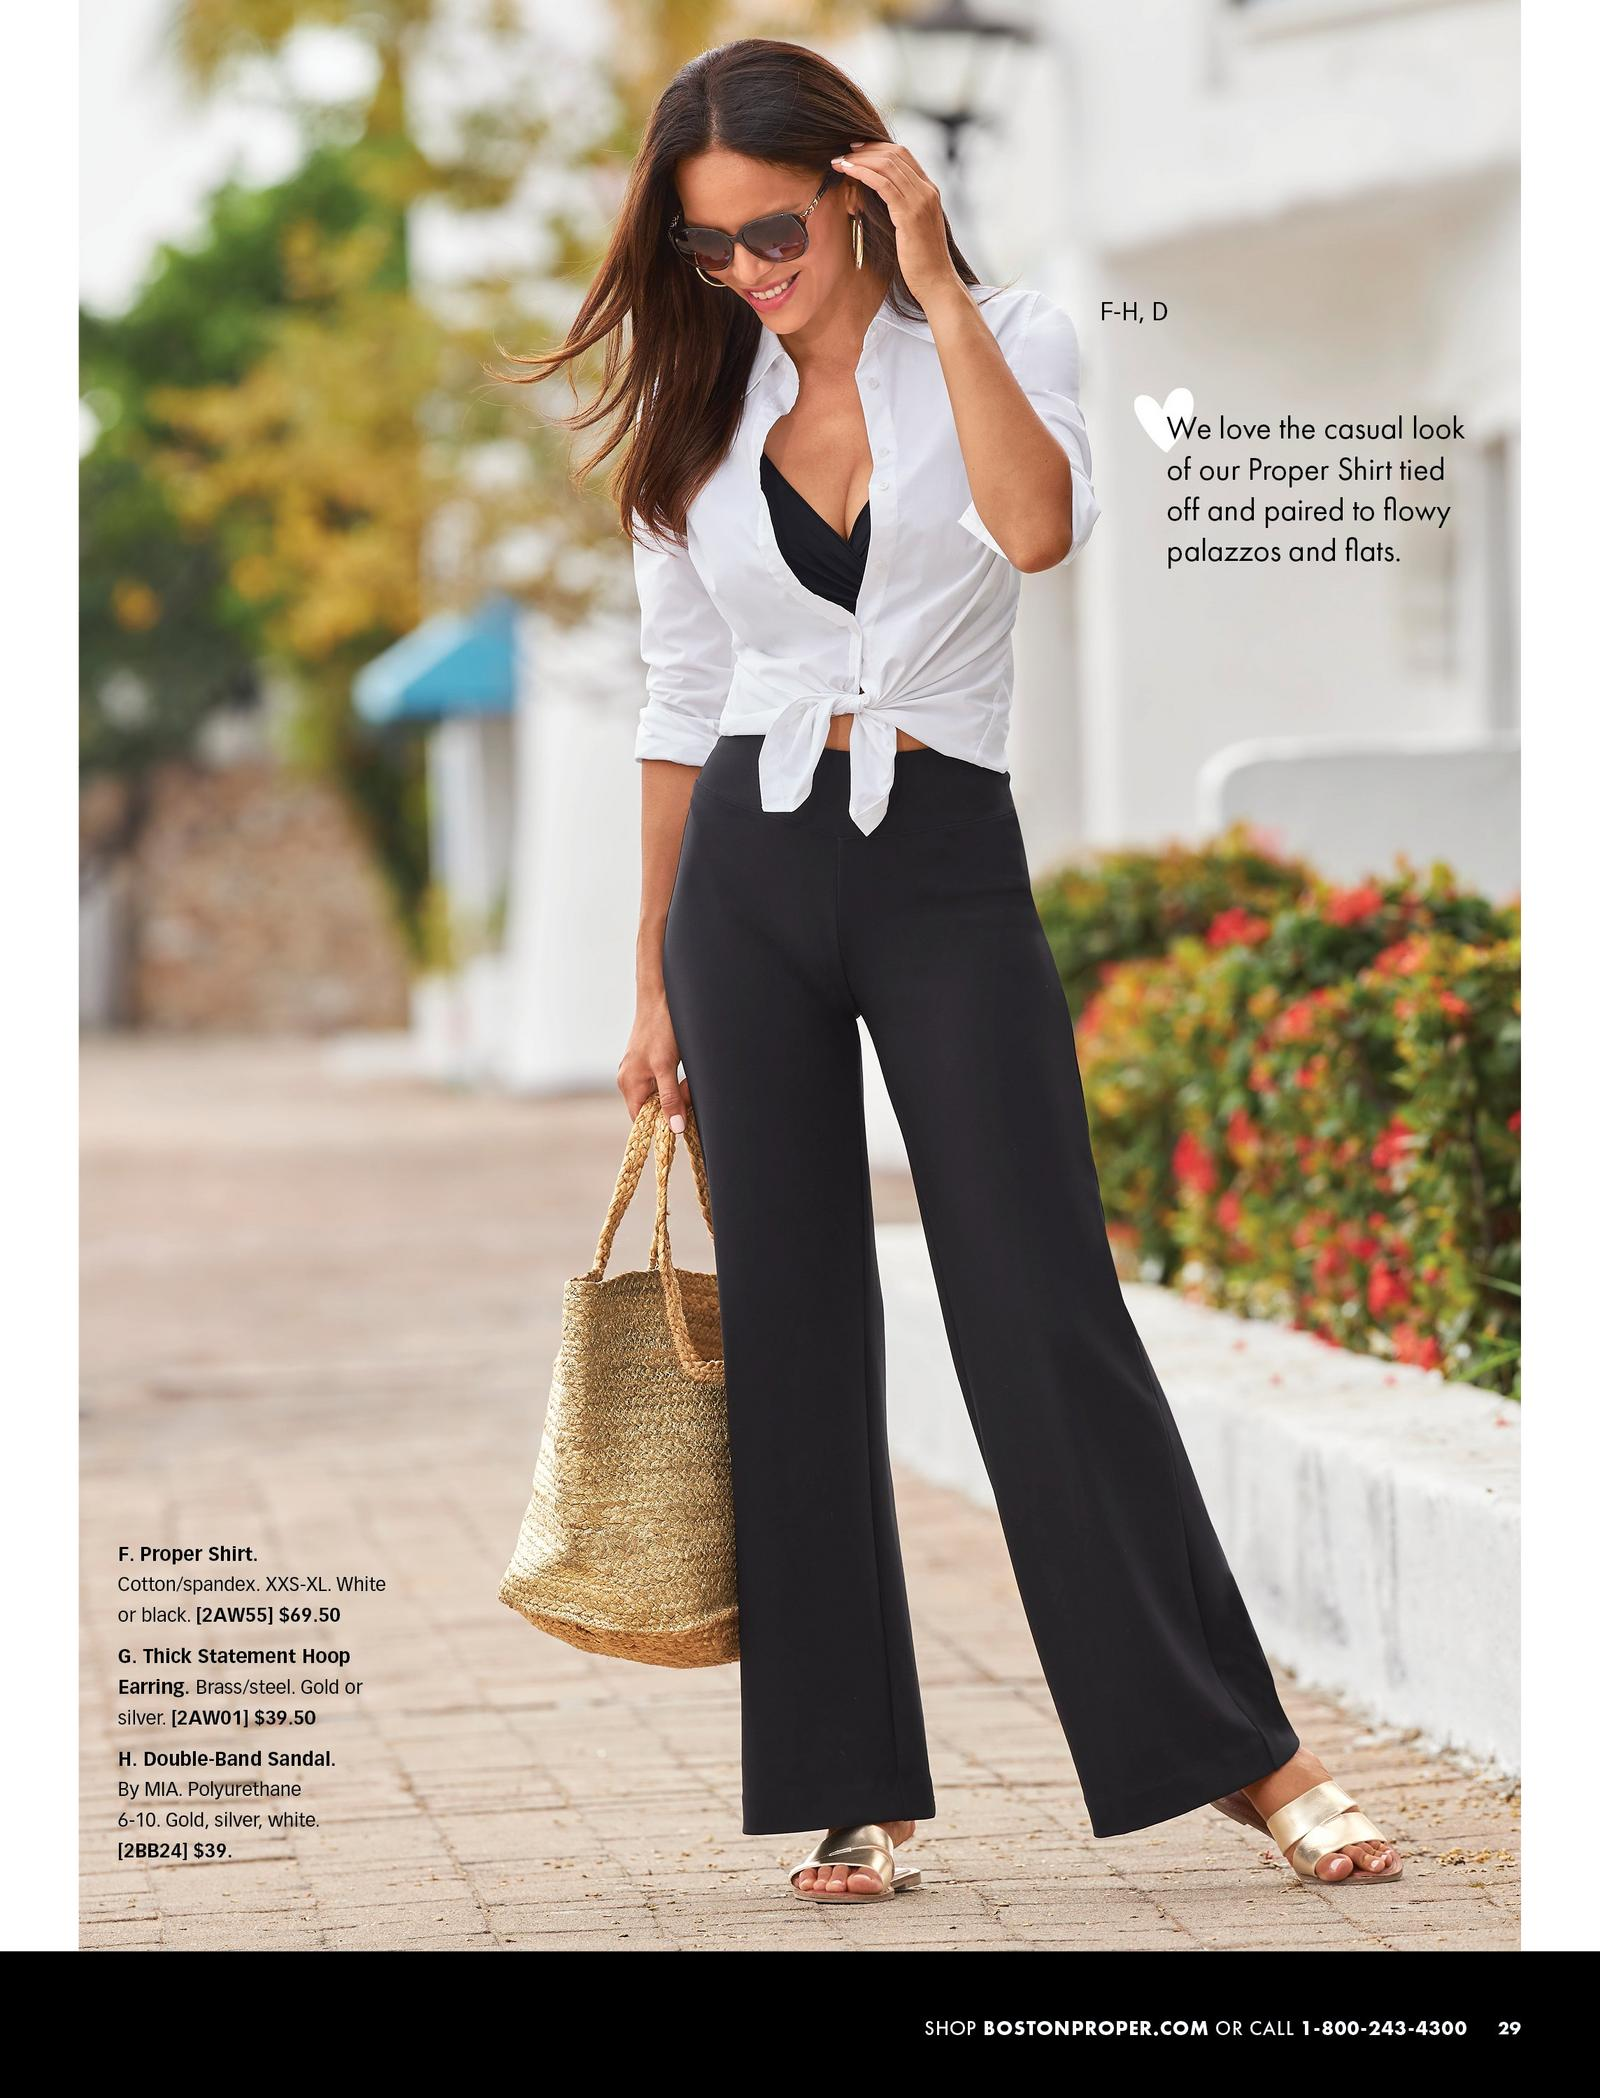 model wearing a white button-down top that has been tied at the front, black bathing suit top, black pants, gold strappy sandals, gold hoop earrings, sunglasses, and holding a straw bag.